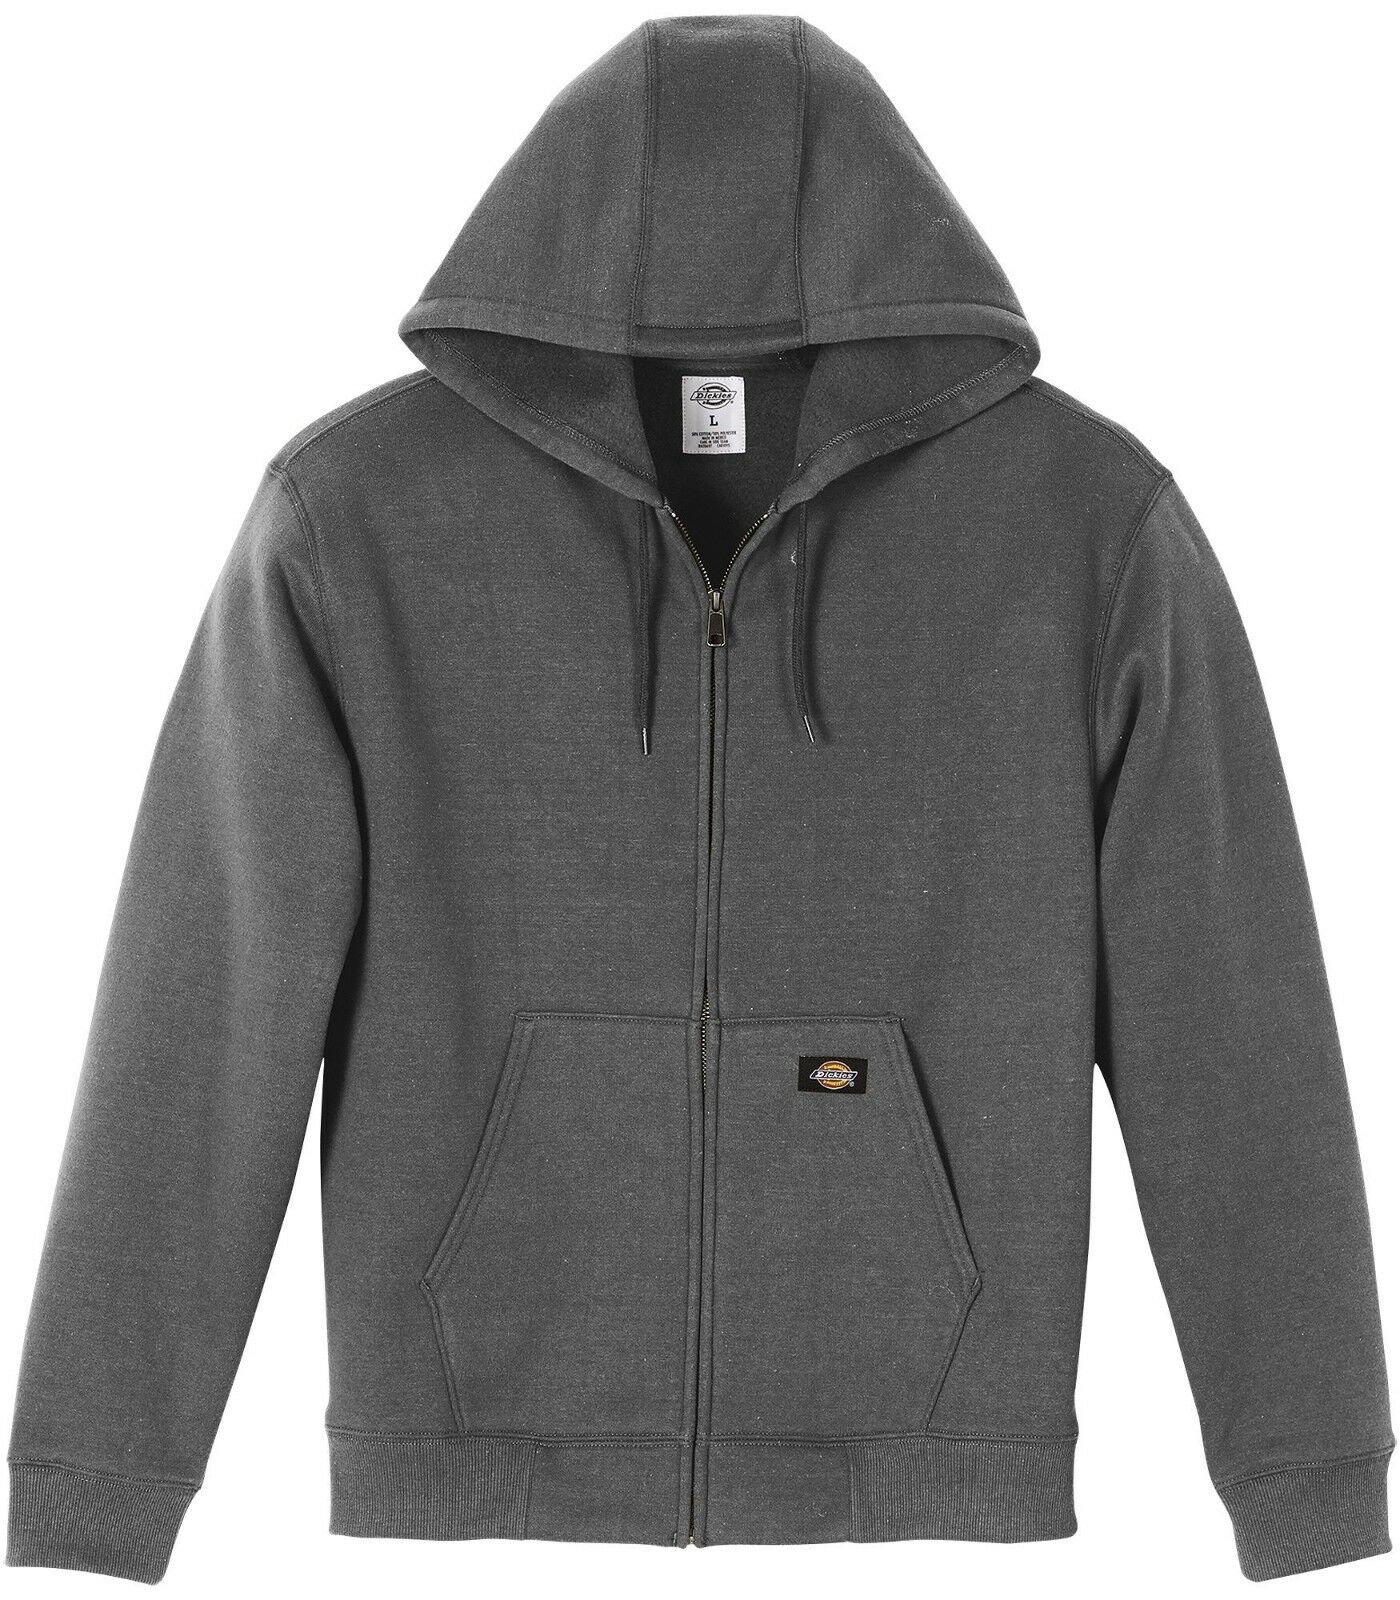 Dickies TW391 Midweight Fleece Full-Zip Hoodie, Various Colors & Sizes Clothing, Shoes & Accessories